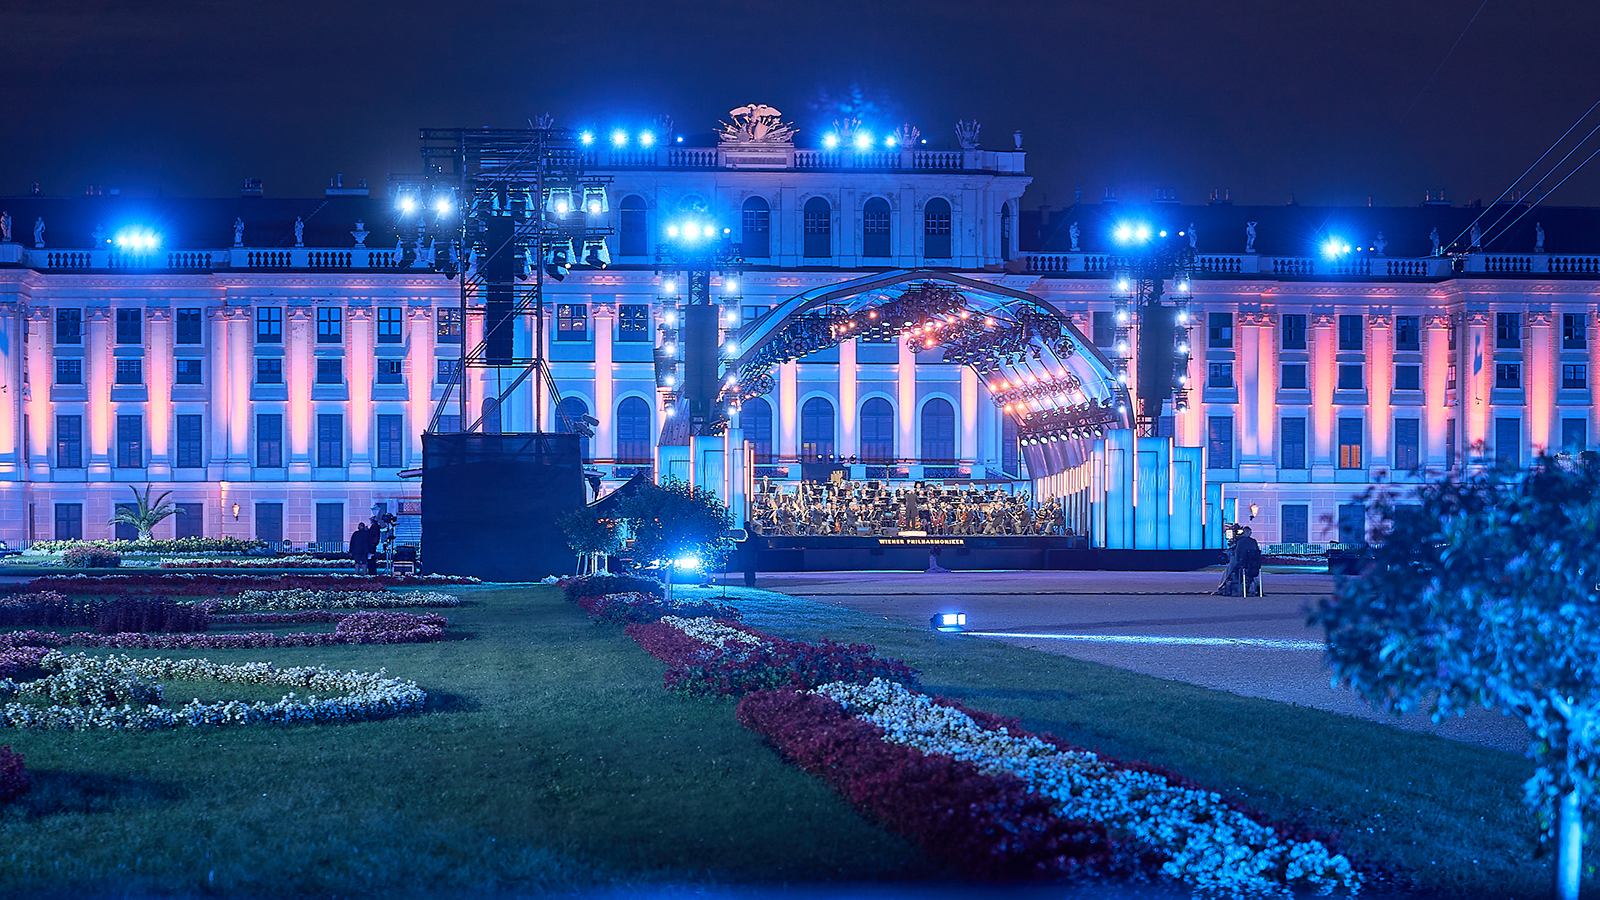 Vienna Philharmonic's Summer Night Concert